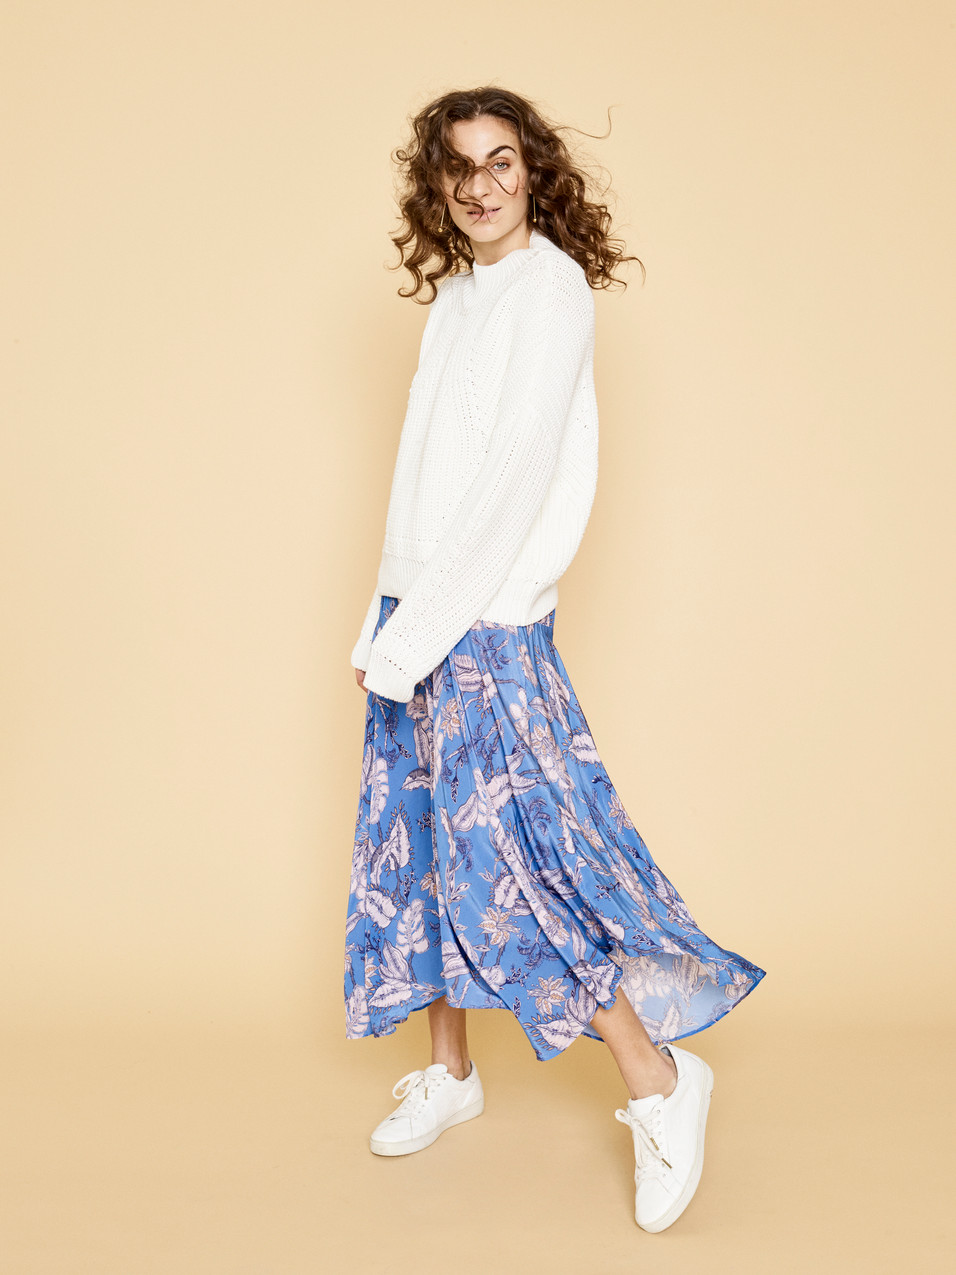 127400 Liz Knit - 125790 Elba Vita Skirt